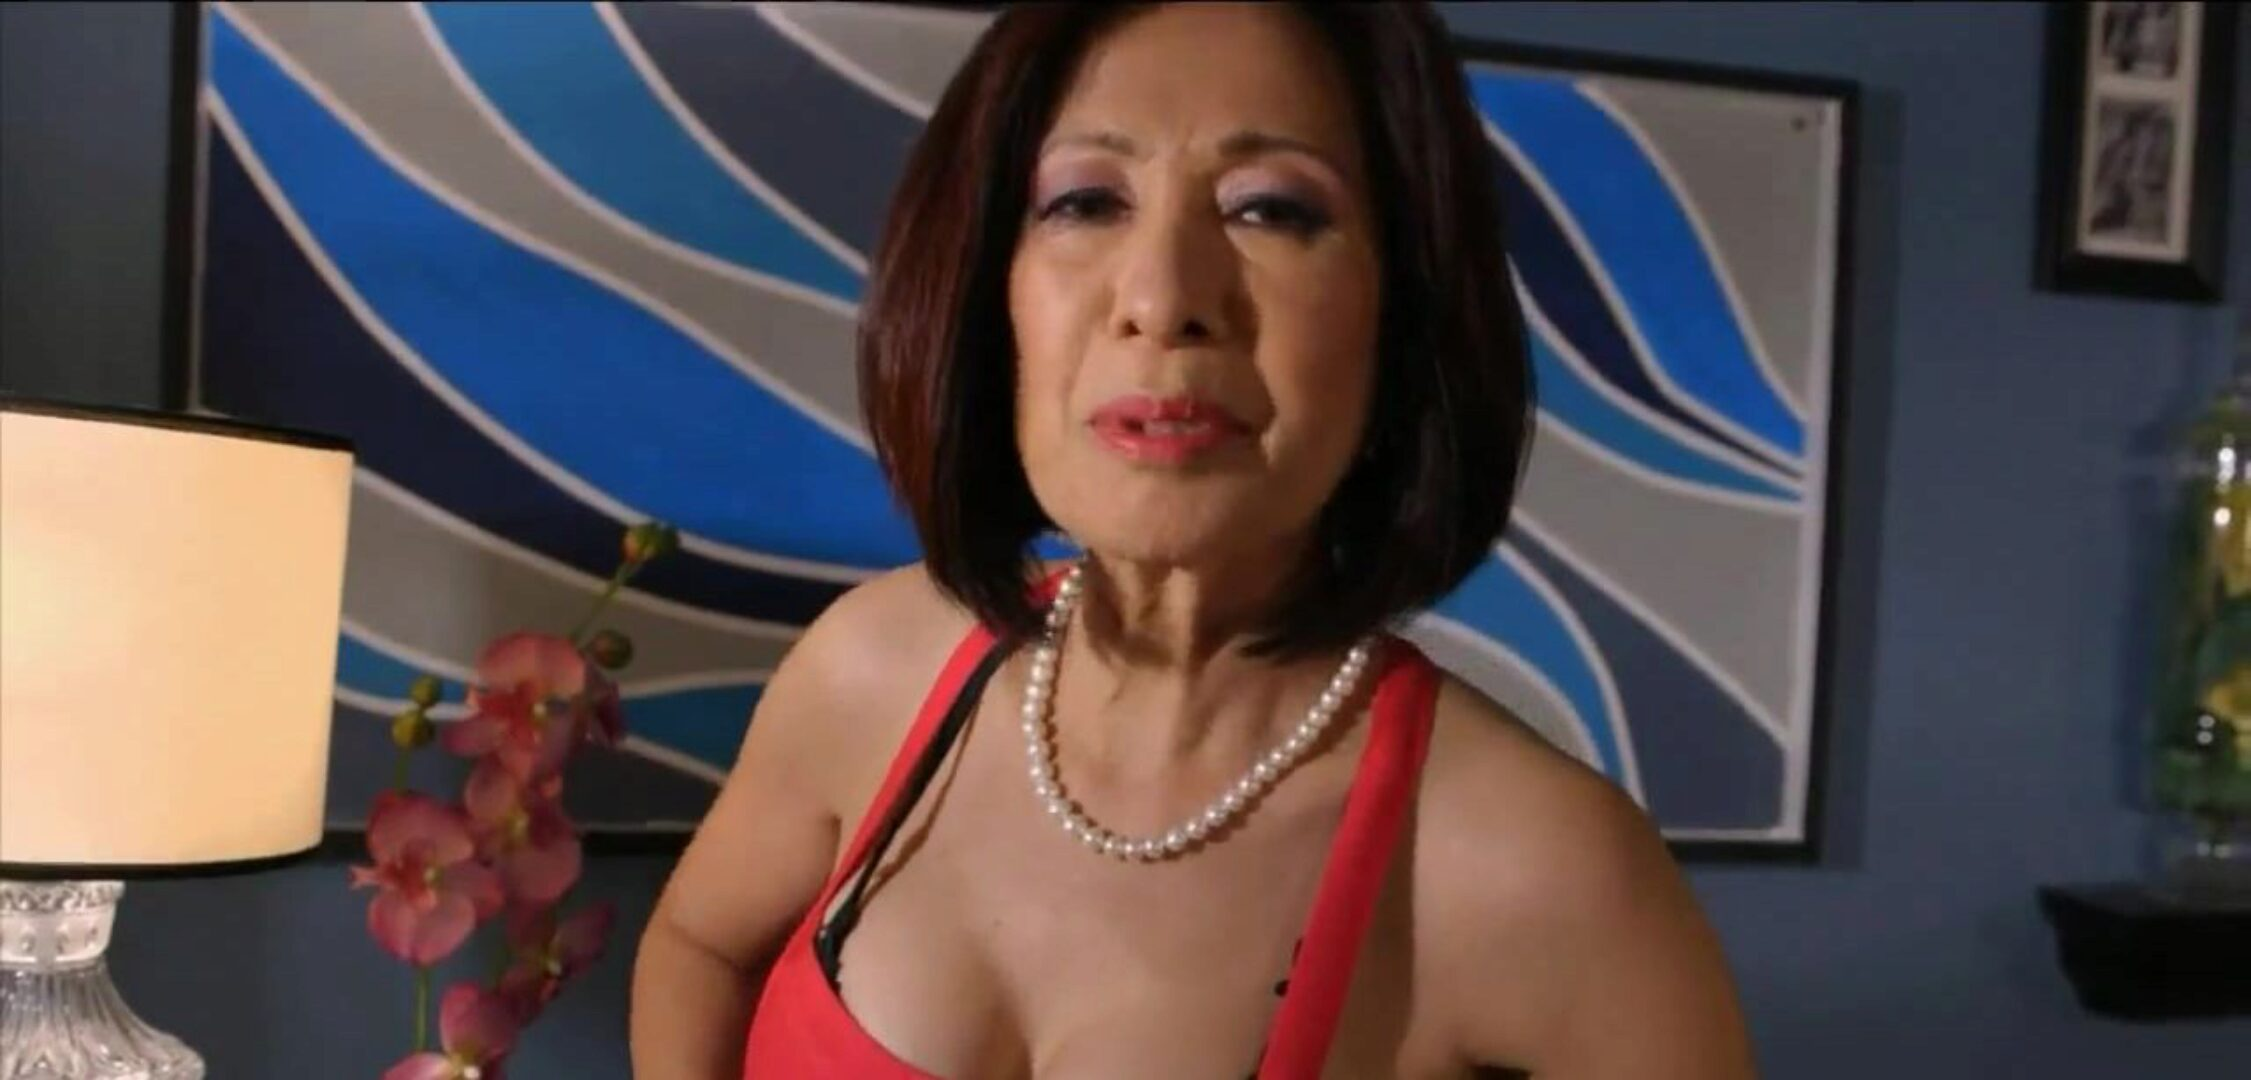 Asian Granny Kim Anh receives Her Asshole Pump Fucked &... Watch Asian Granny Kim Anh acquires Her Asshole Pump Fucked & Jizzed video on xHamster - the ultimate selection of free Asshole Tube & Asian Beeg HD pornography tube videos